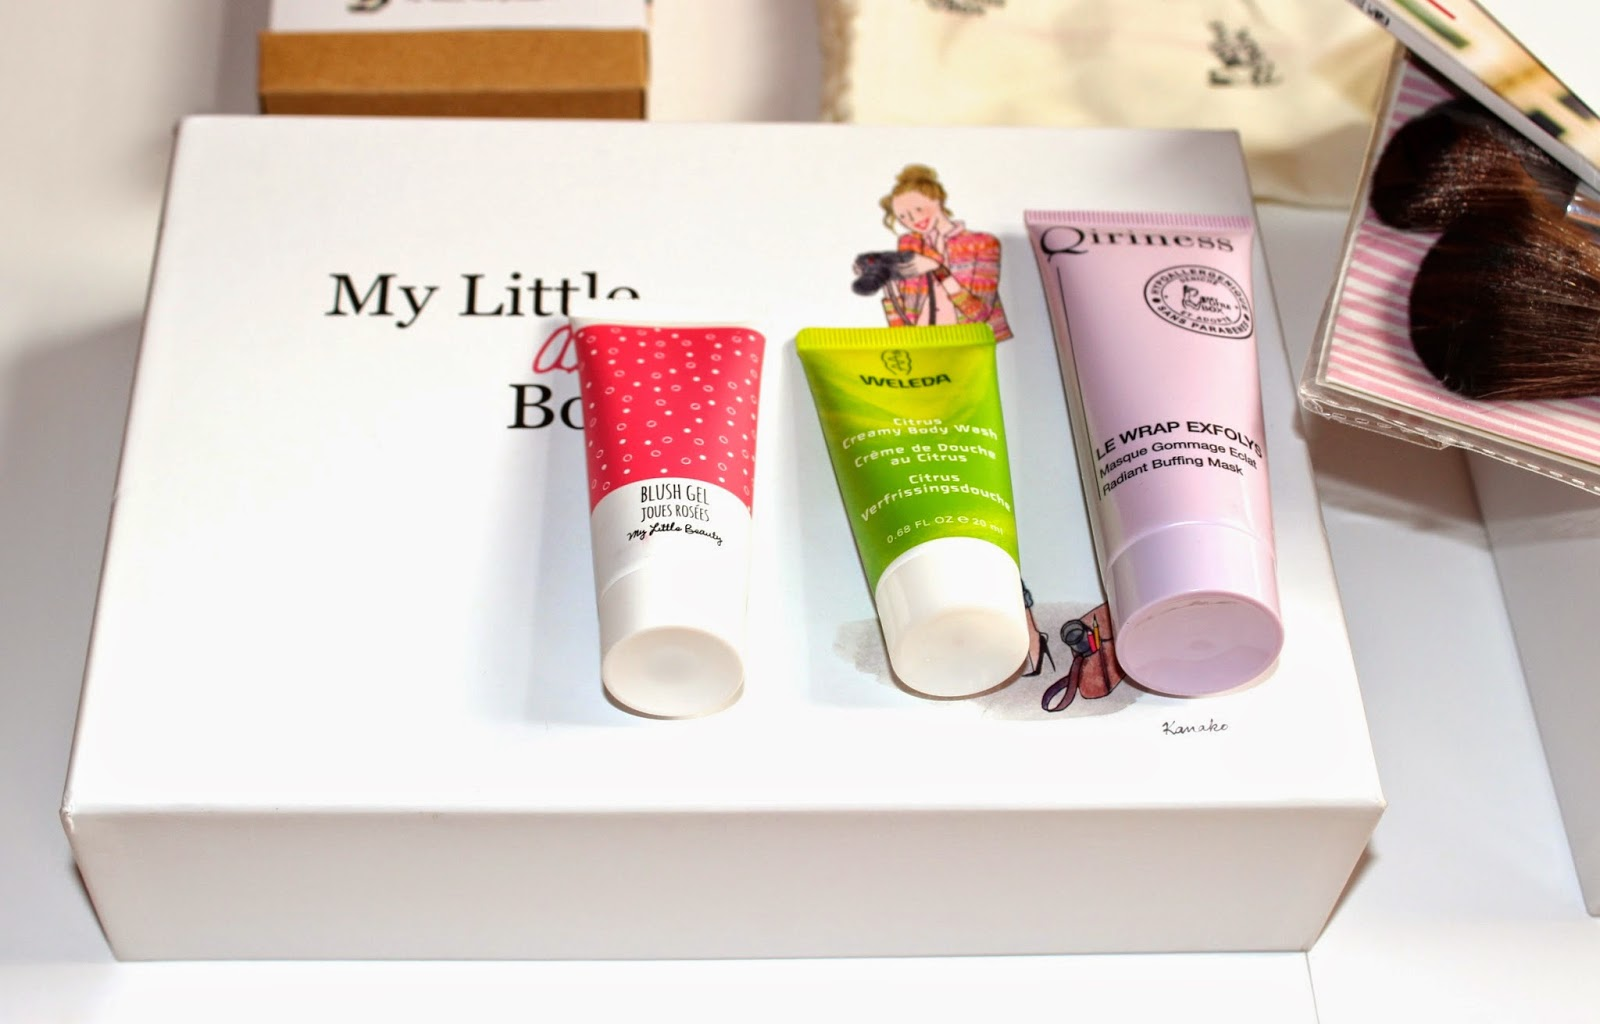 MY LITTLE BOX LAUNCHES THE UK!